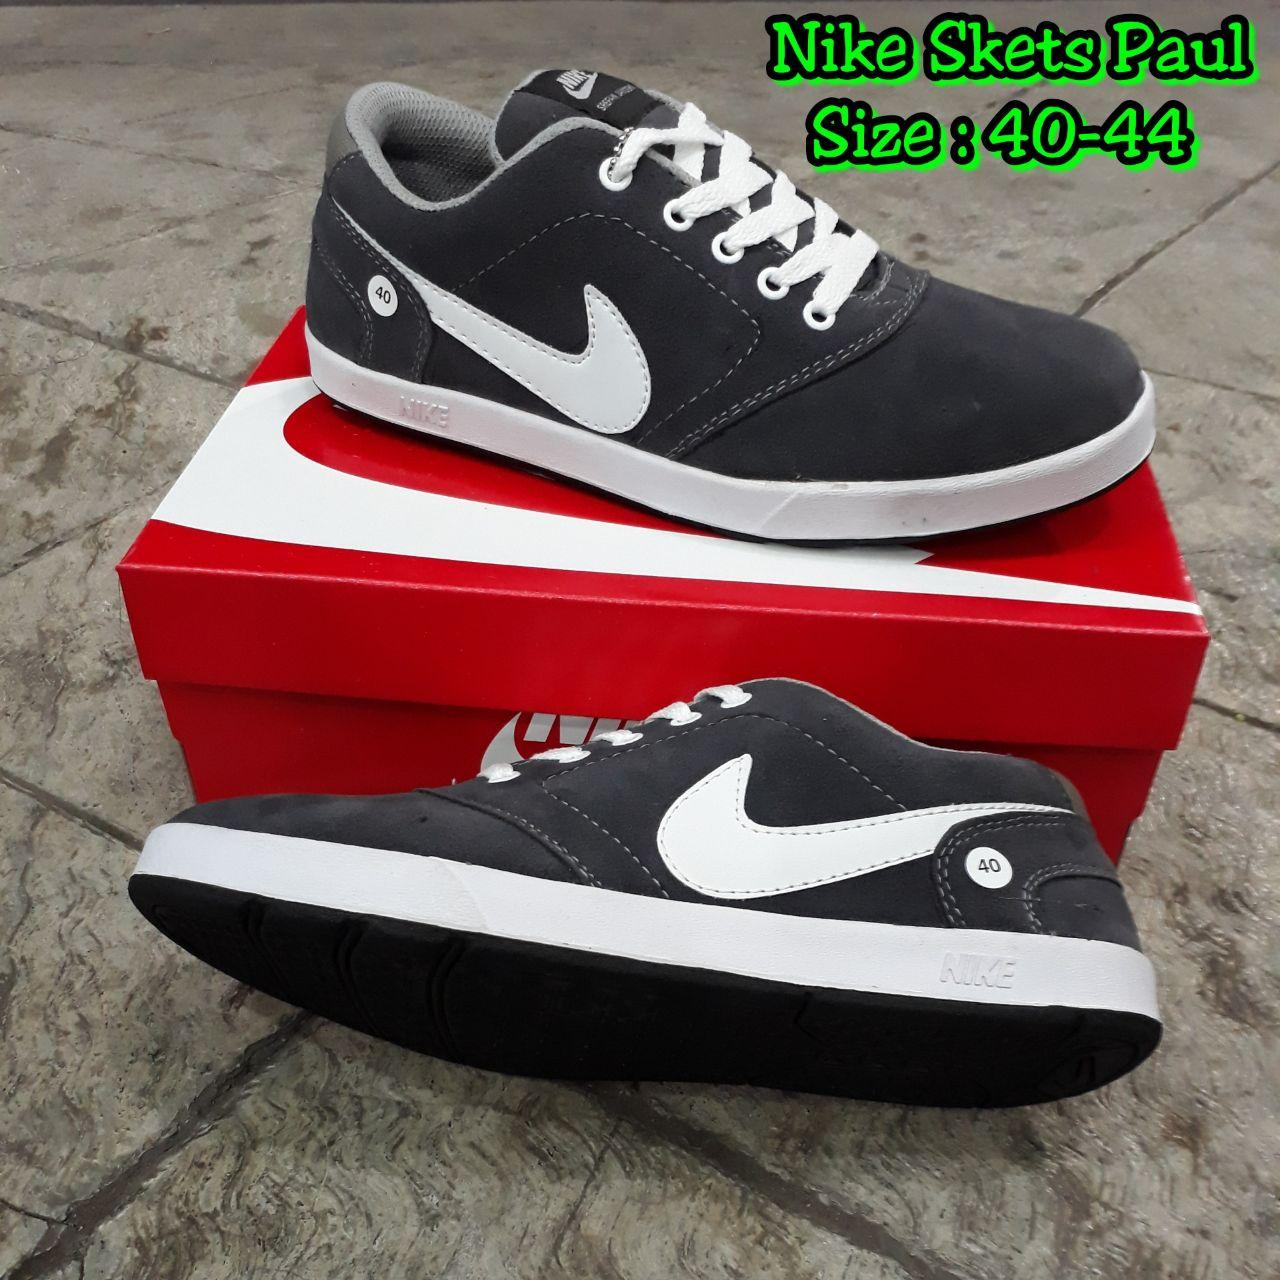 92007d5ec820 Buy   Sell Cheapest NIKE PAUL PROMO Best Quality Product Deals ...